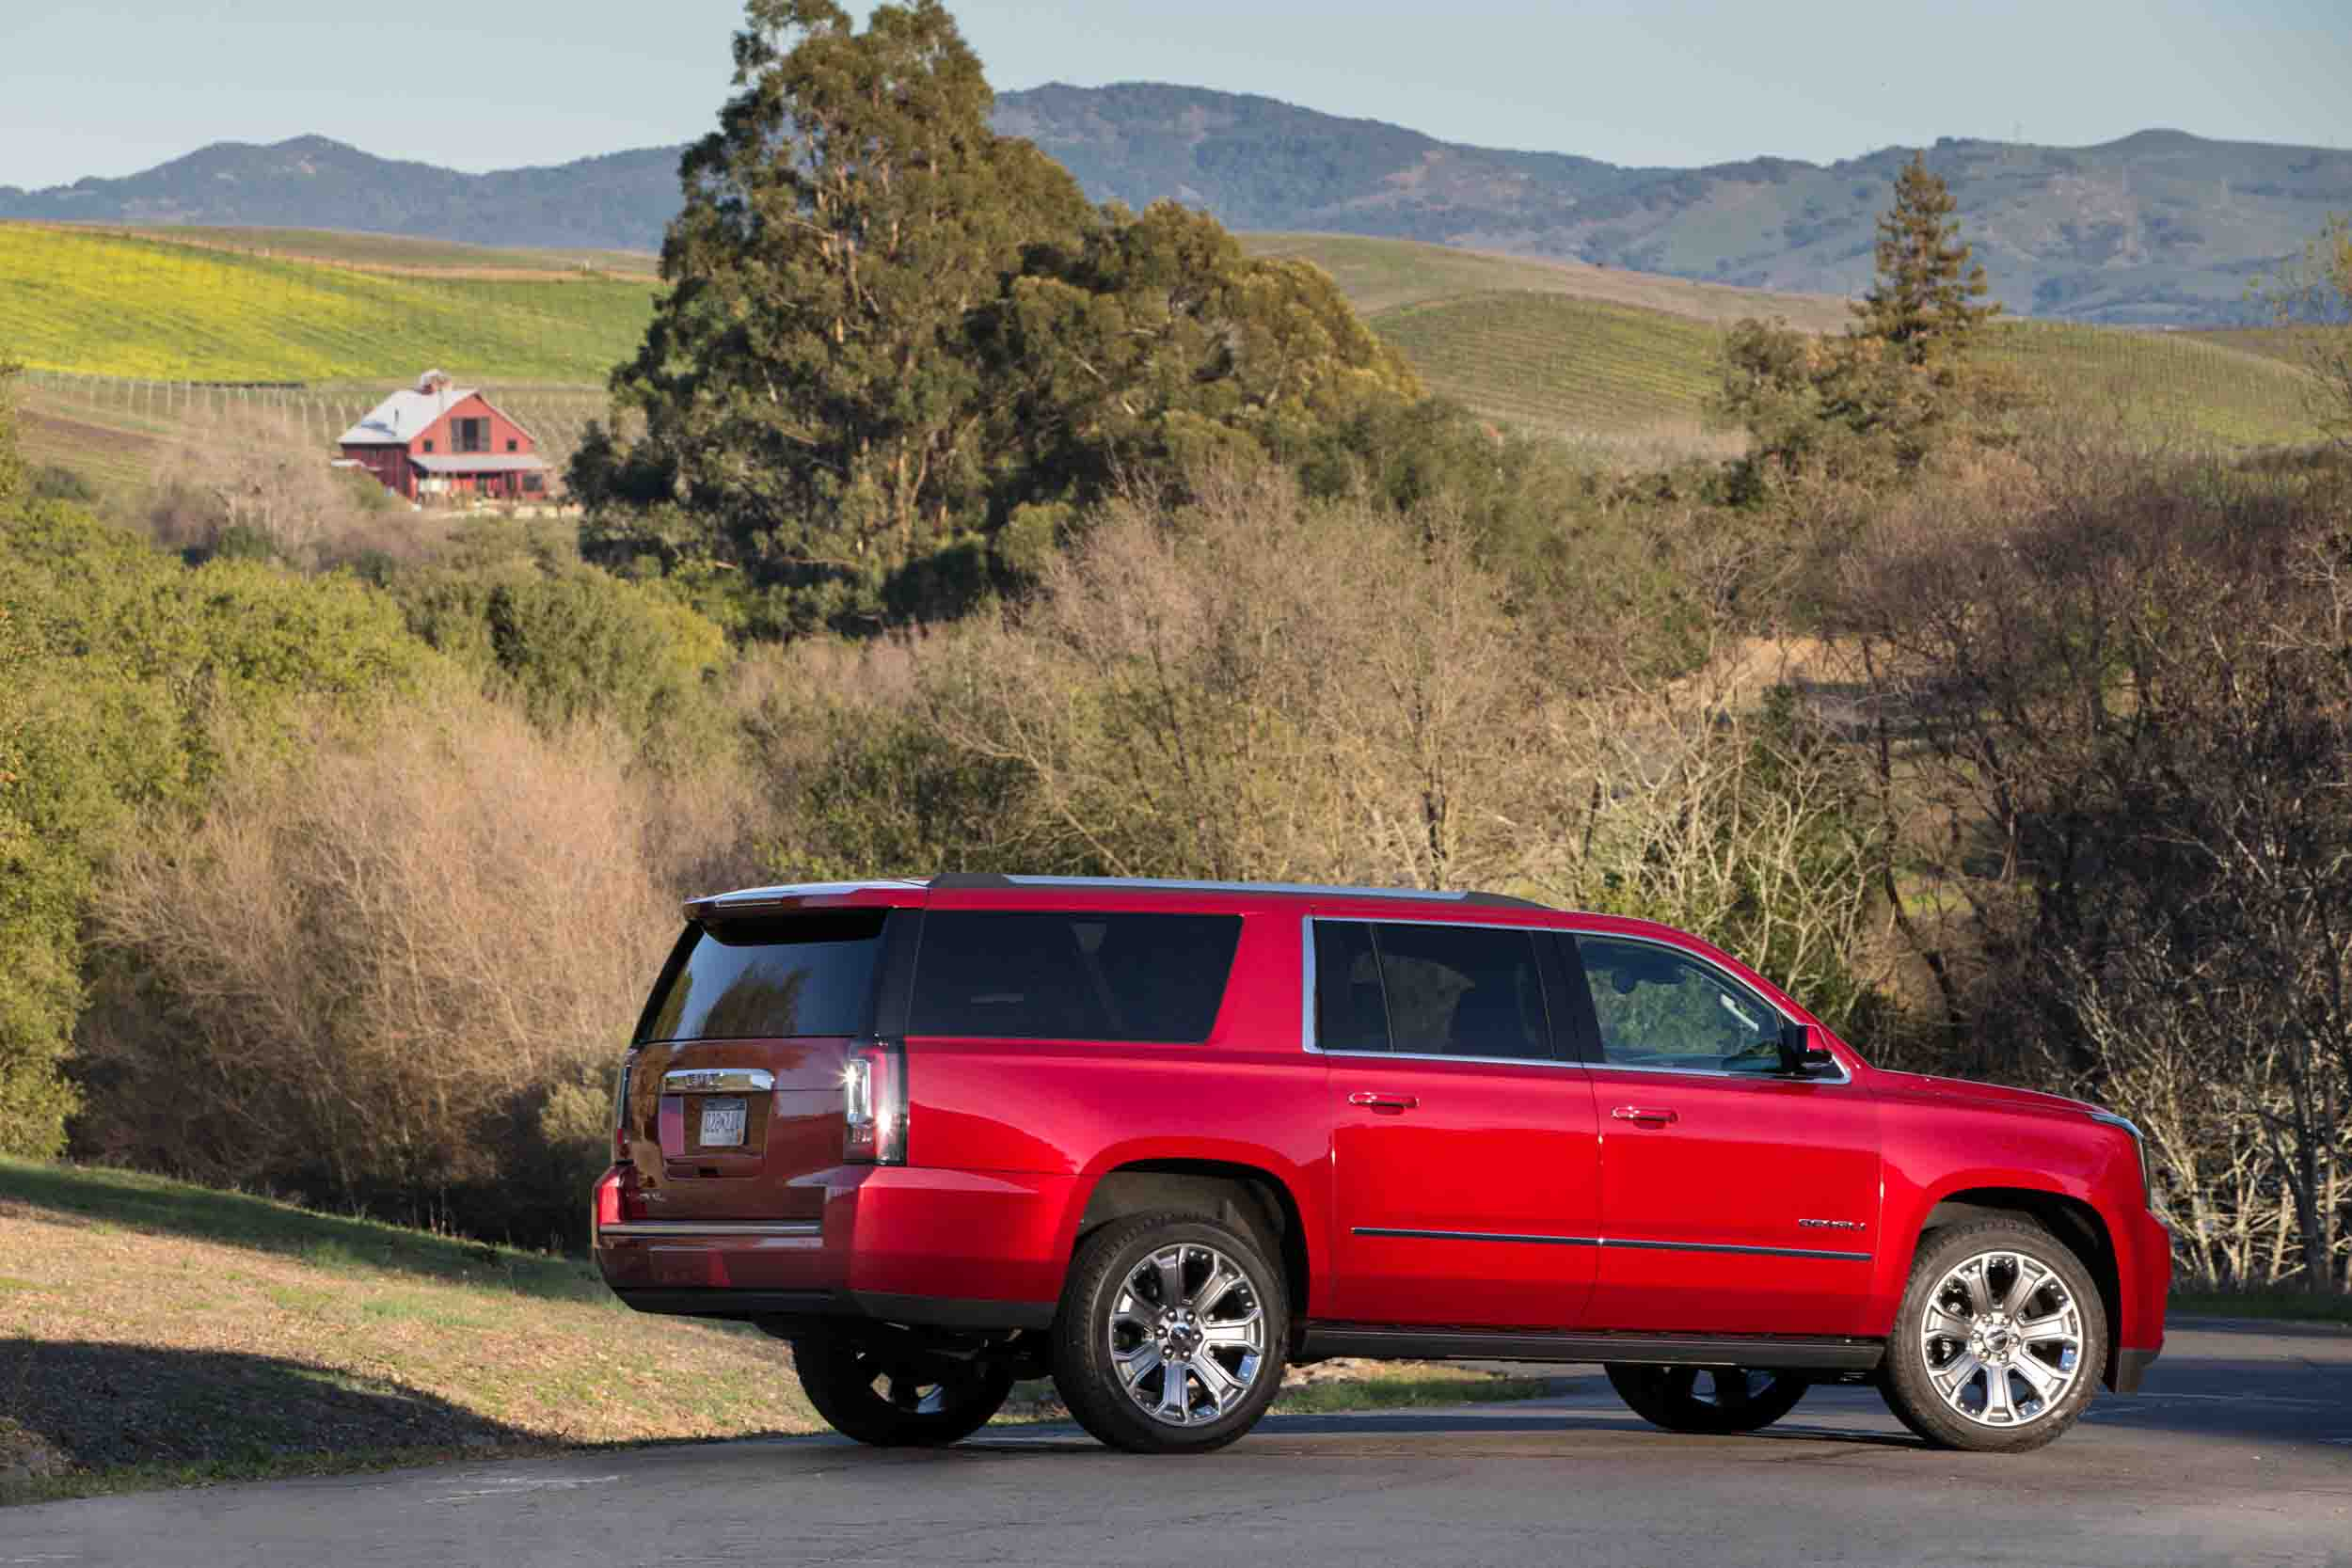 annual texas xl txgarage by family style denali reviewing the vacation reviewed gmc yukon